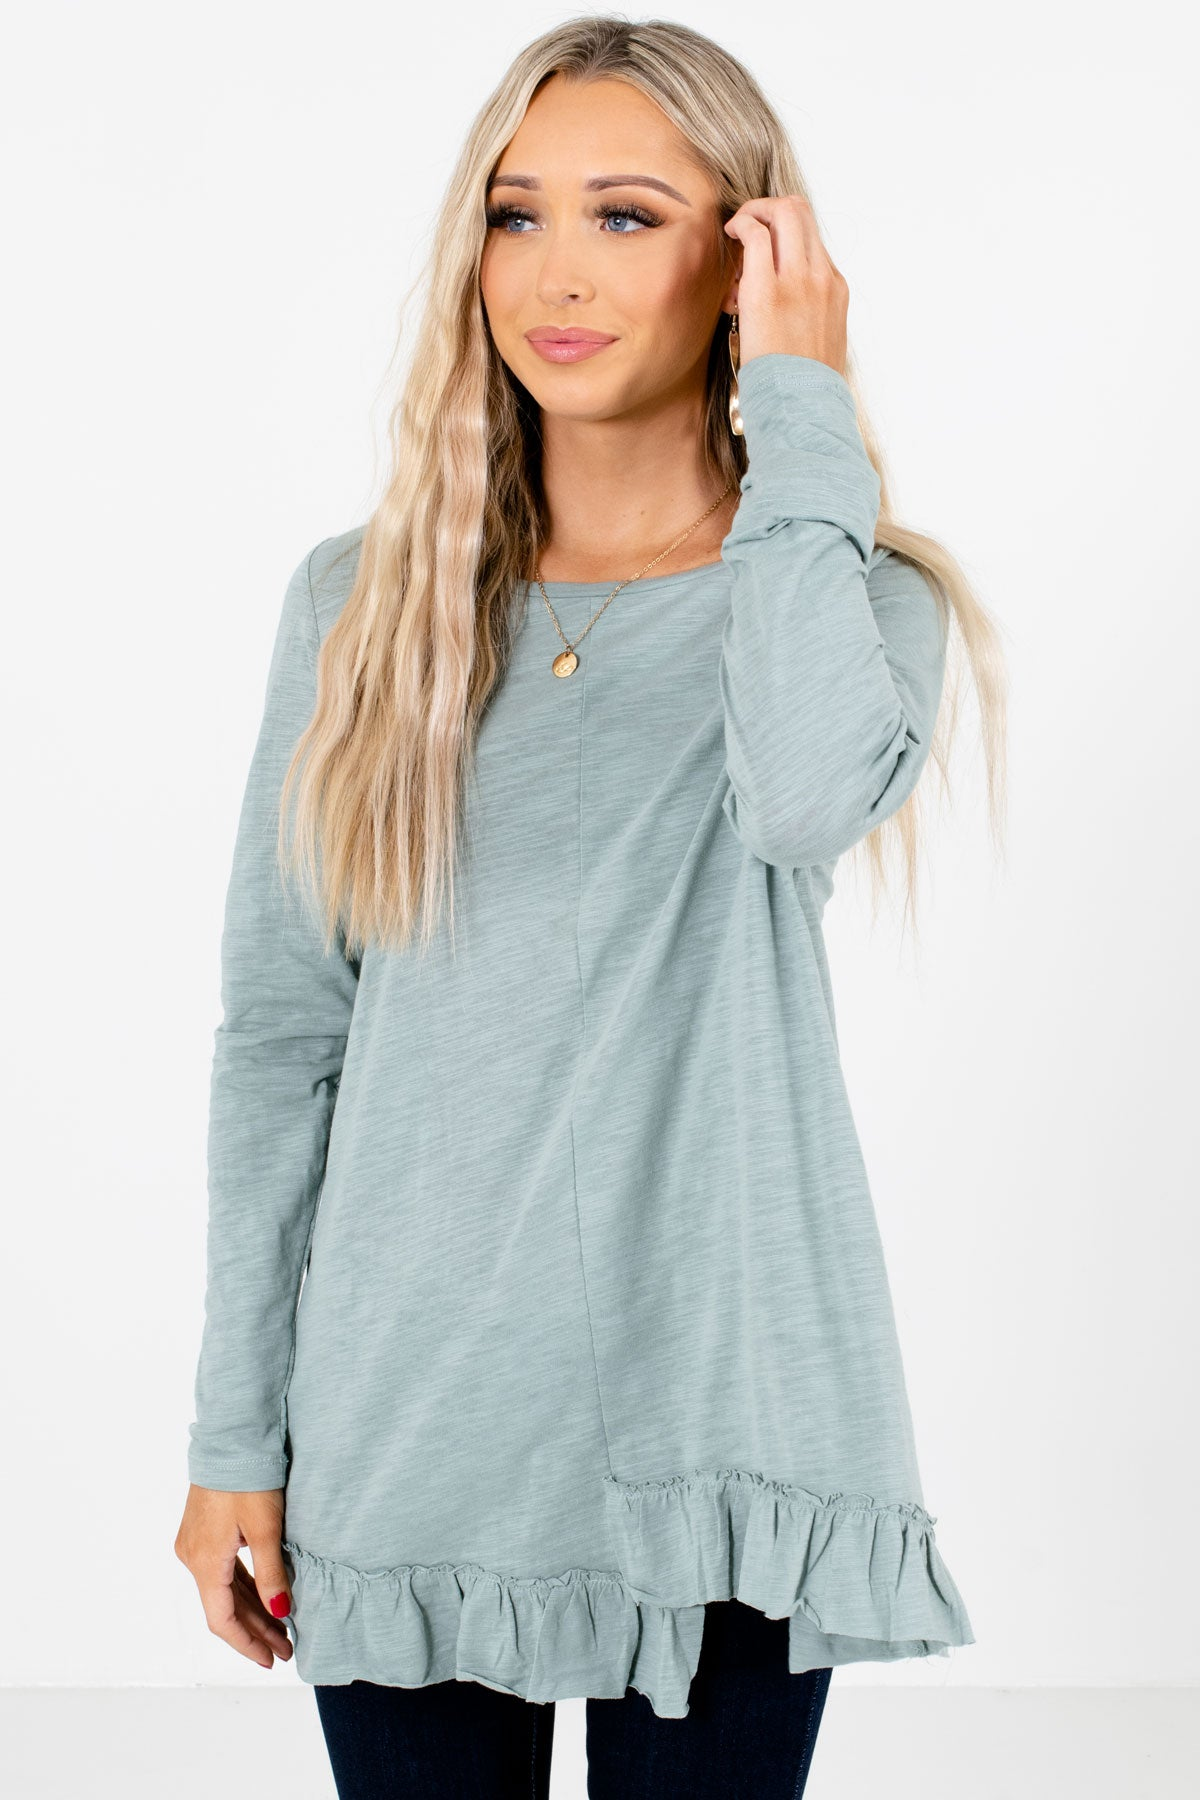 Sage Ruffled Hem Boutique Tops for Women